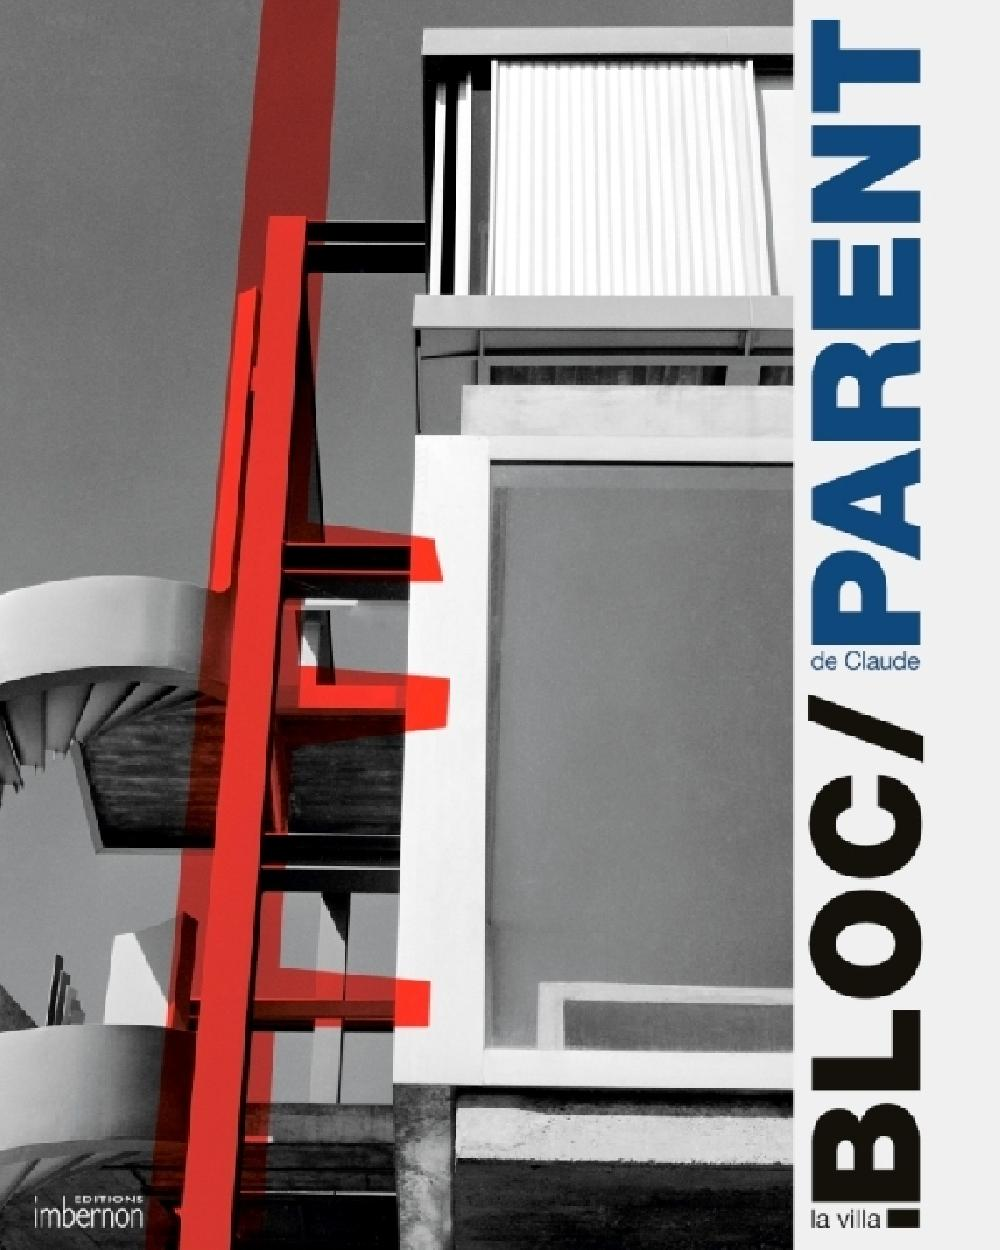 La villa Bloc de Claude Parent. Architecture et sculpture